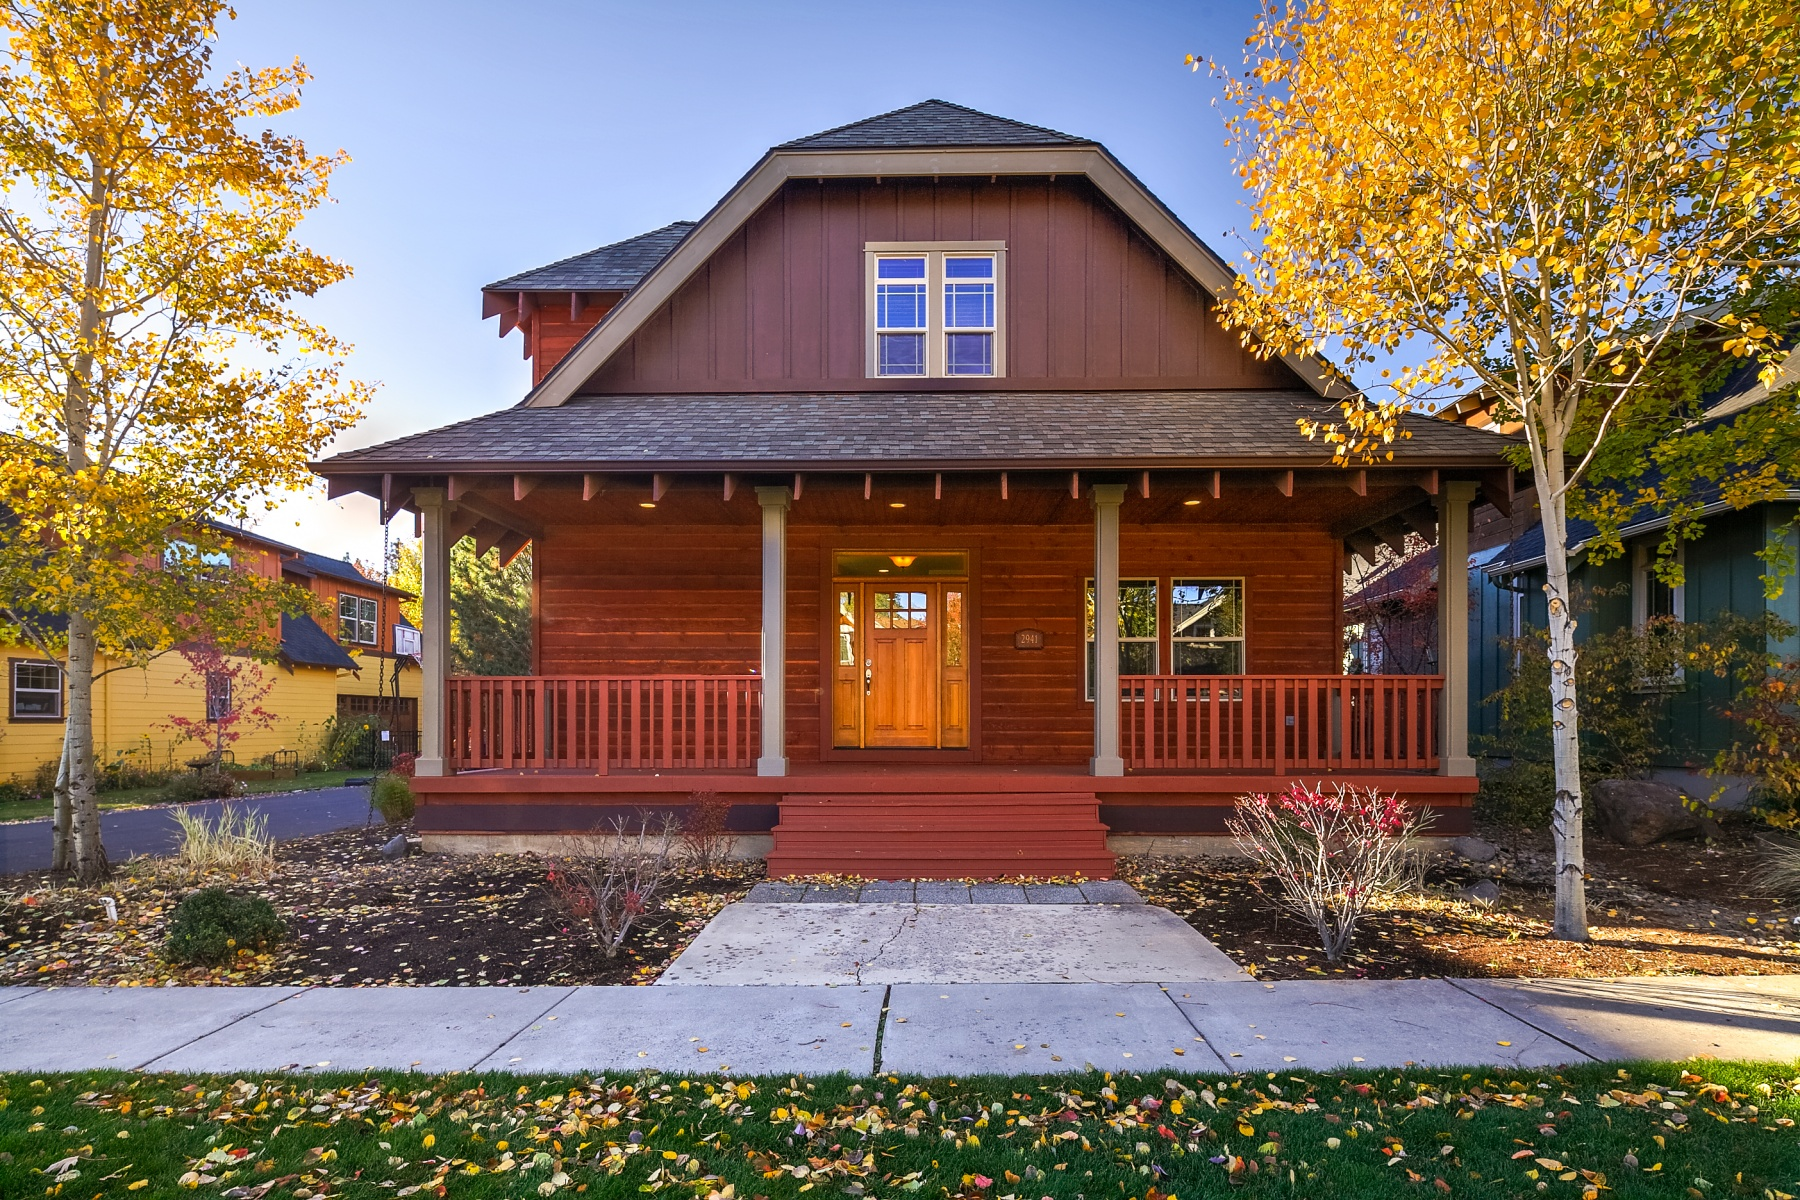 独户住宅 为 销售 在 Charming Home in Shevlin Meadows 2941 NW Wild Meadow Dr Bend, 俄勒冈州 97701 美国